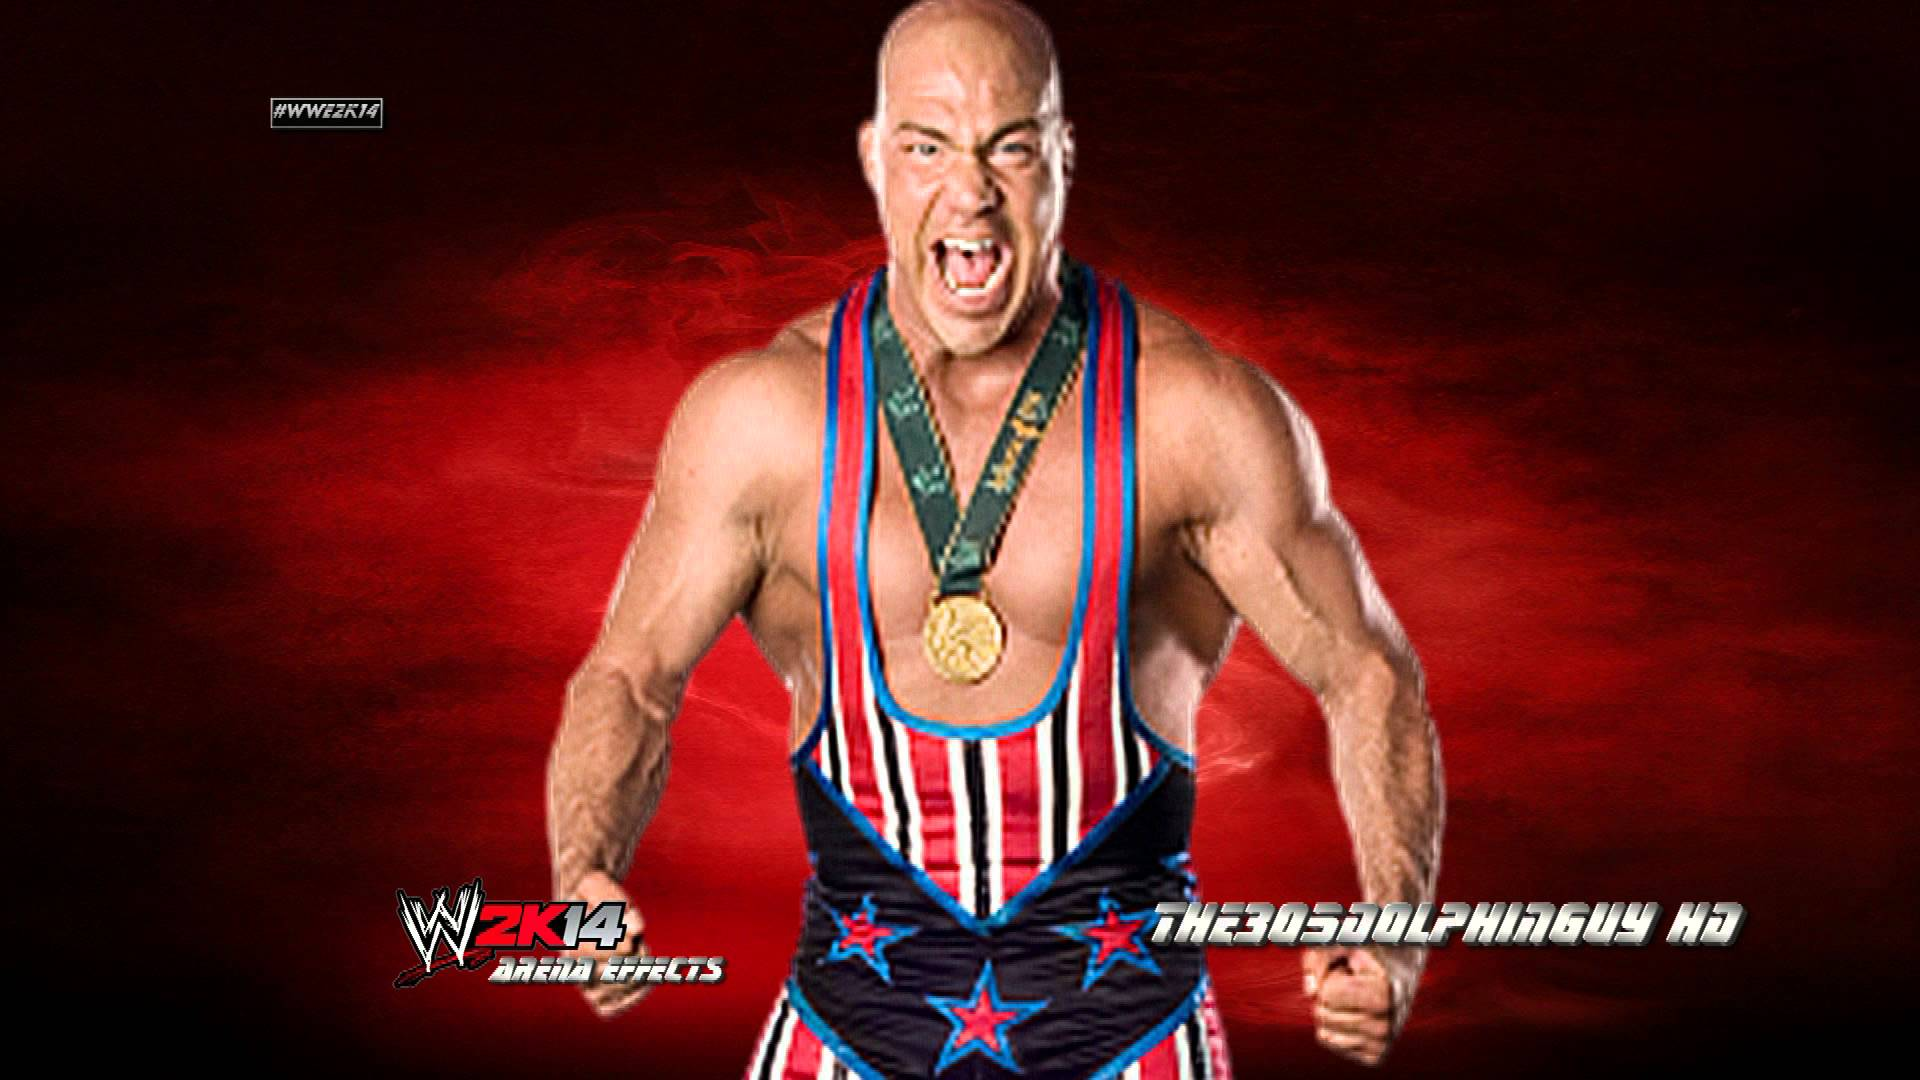 WWE: Kurt Angle 1st Theme - Medal (HQ + Arena Effects) - YouTube